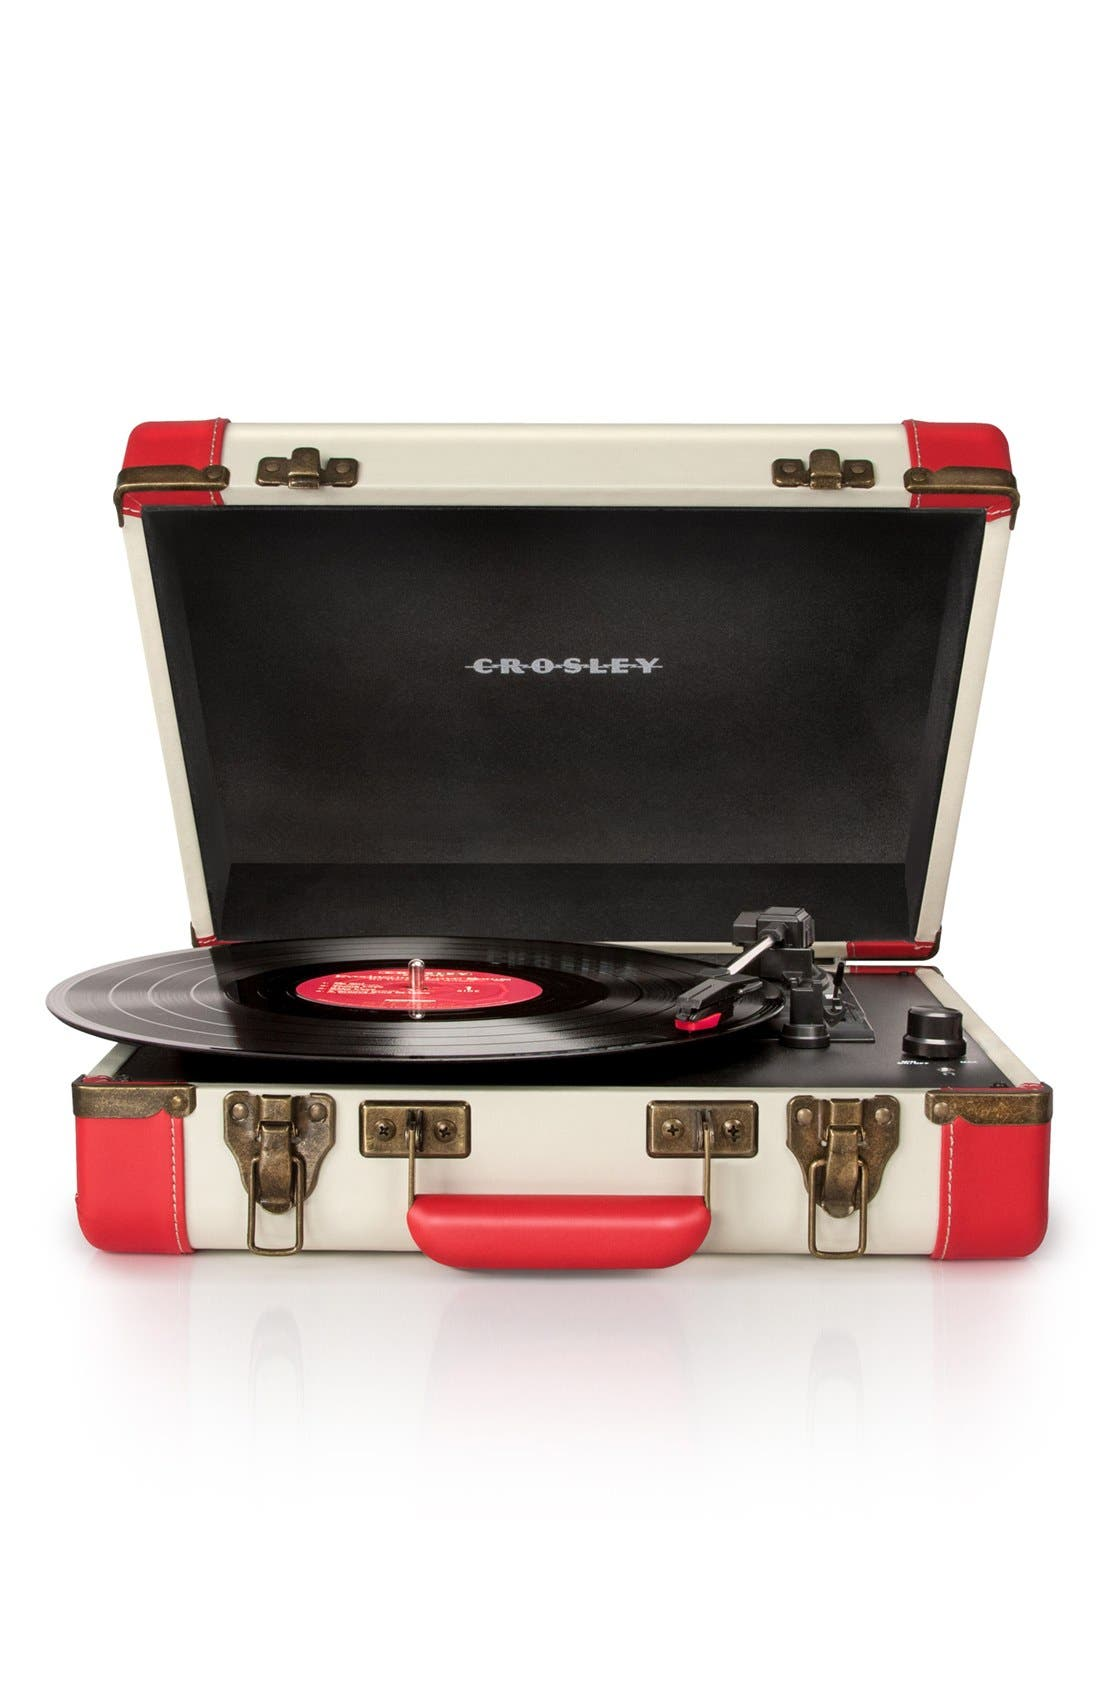 Crosley Radio Executive USB Turntable